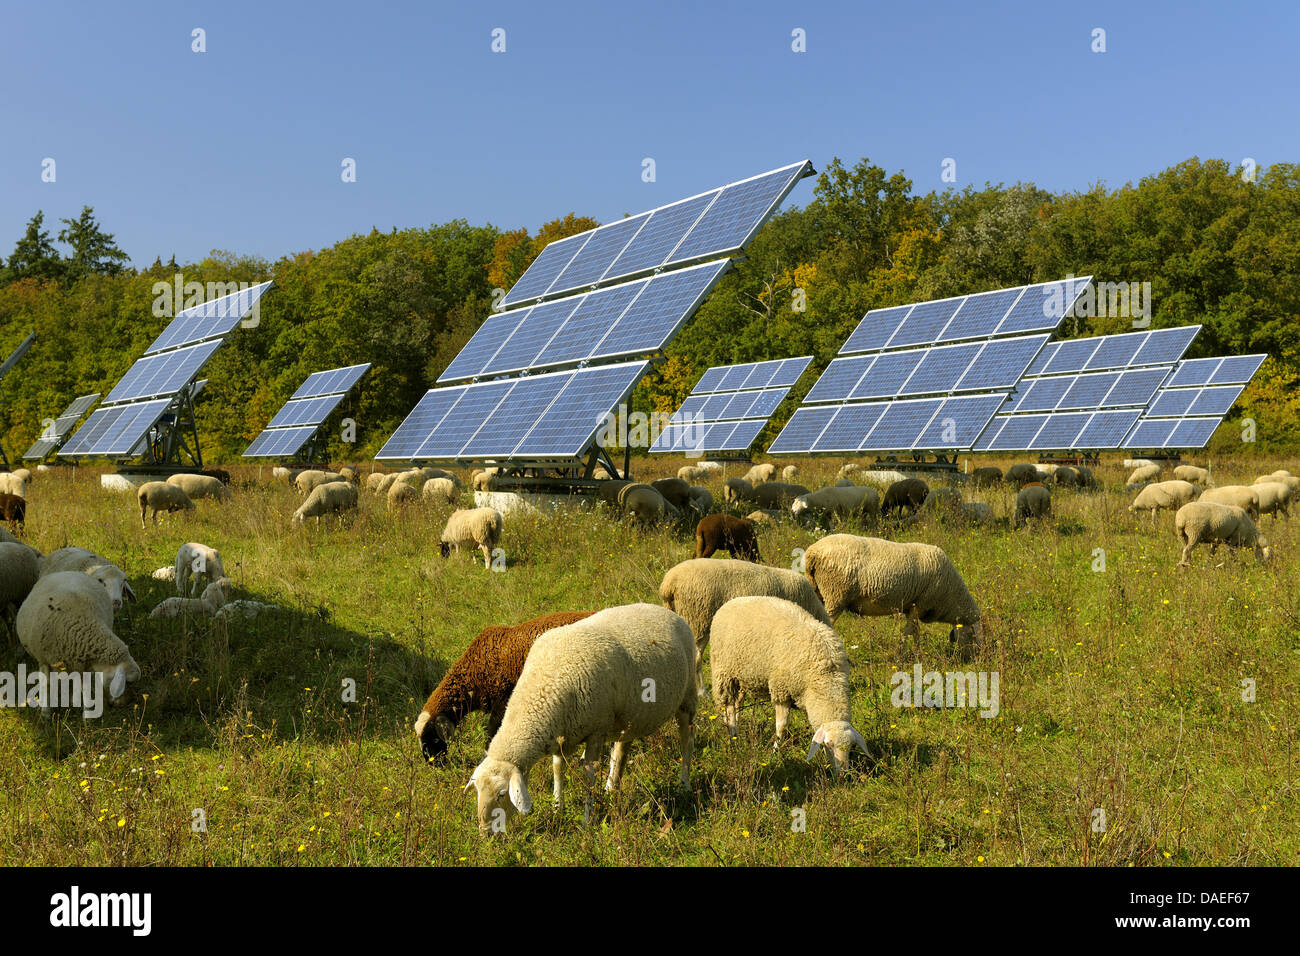 domestic sheep (Ovis ammon f. aries), Solar Panels with sheep in Field, Germany, Bavaria - Stock Image